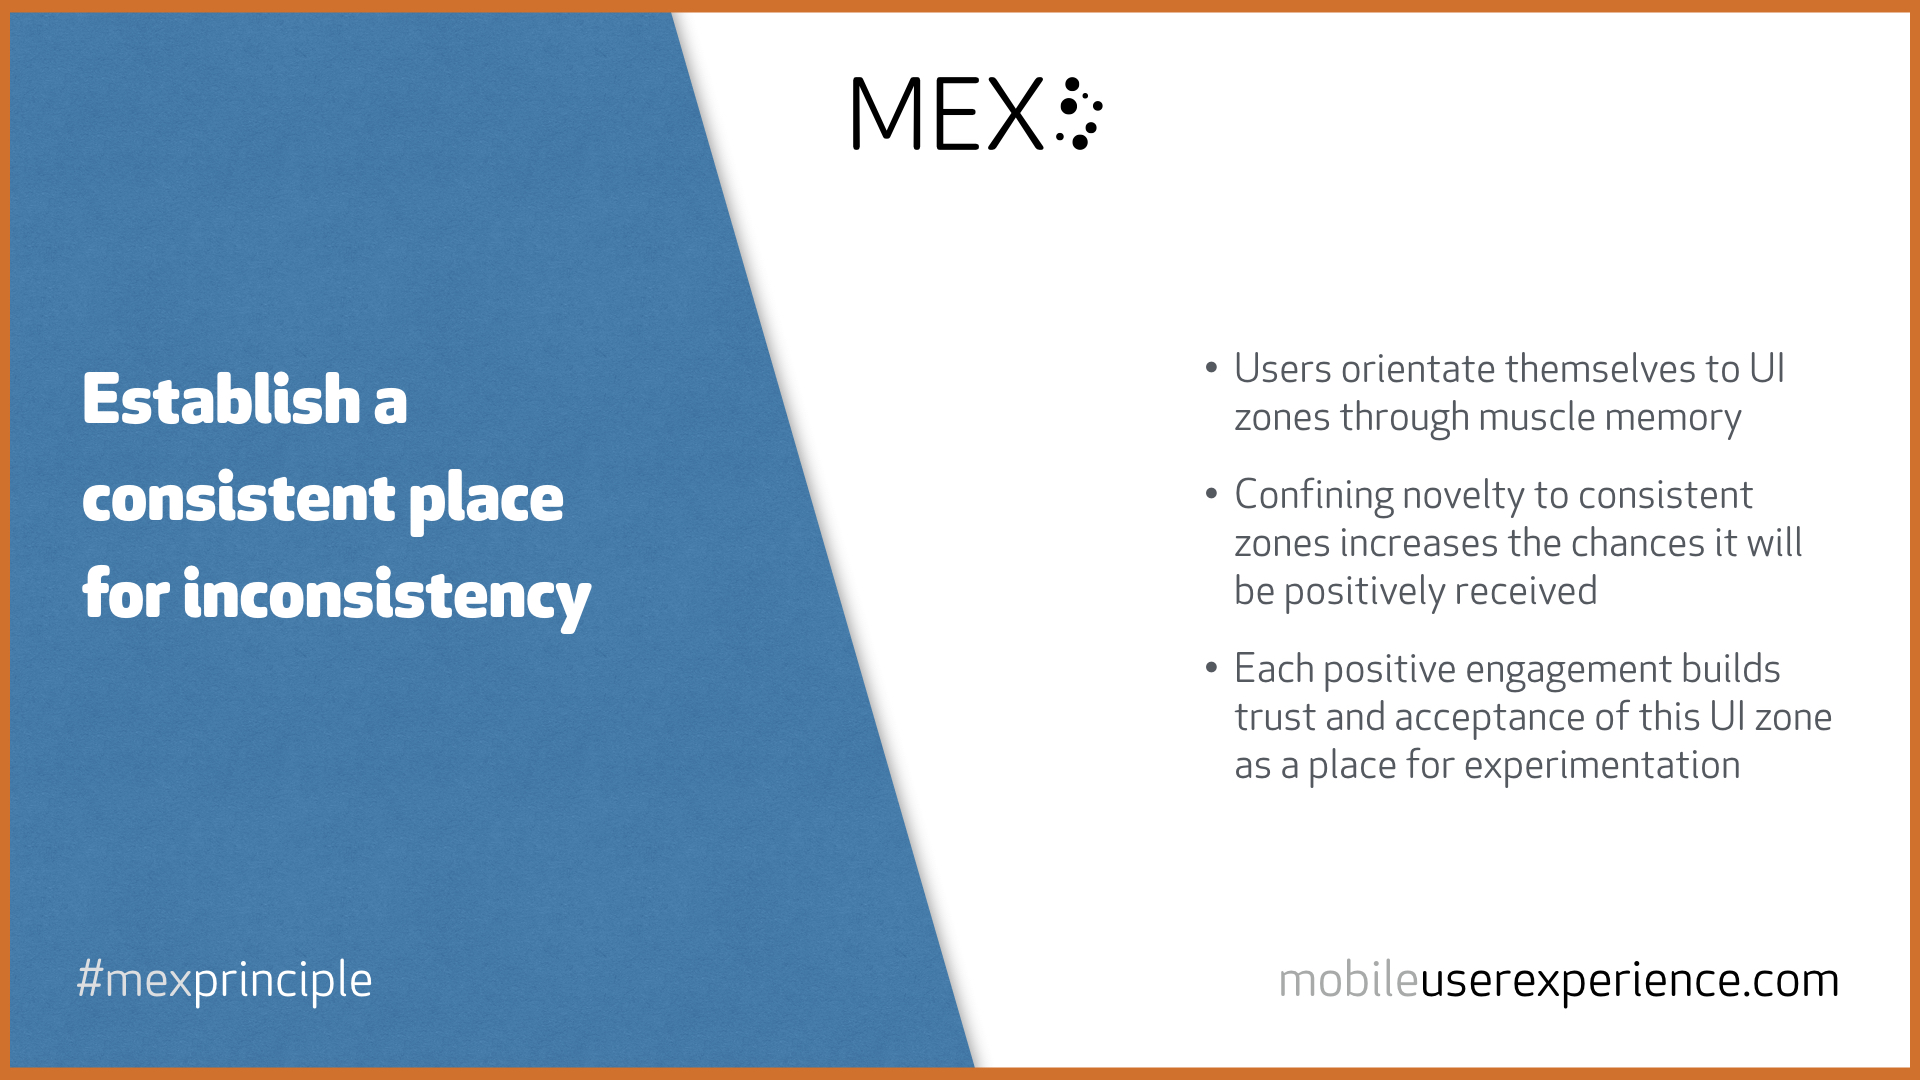 Establish a consistent place for inconsistency - MEX Design Principles